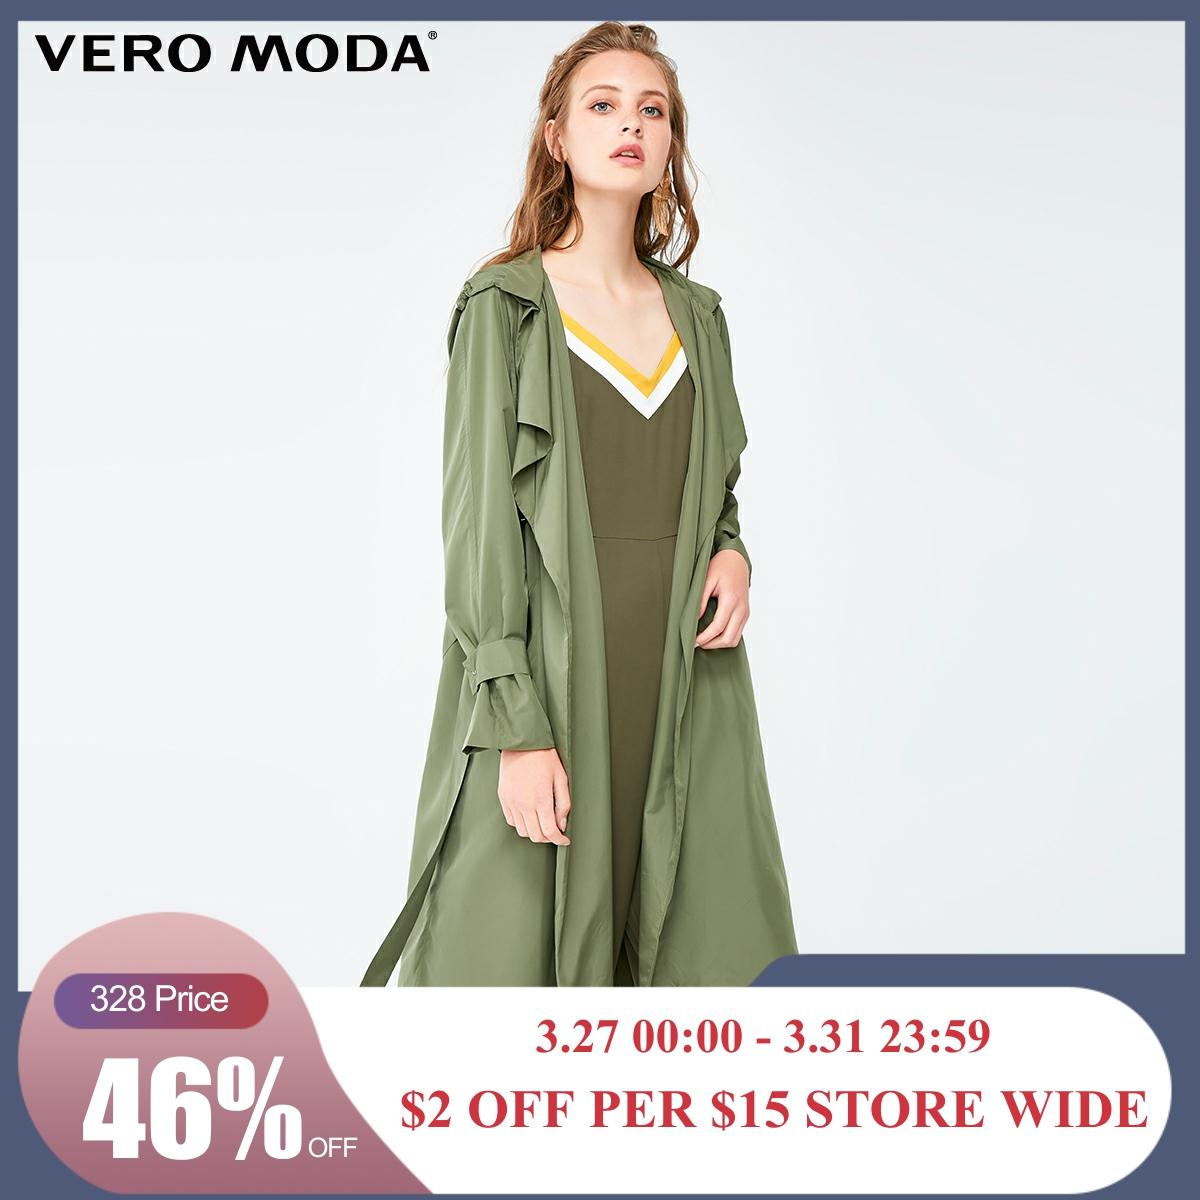 Vero Moda Women's Lapel Lace-up Medium Length Hooded Pure Trench Coat | 318321504